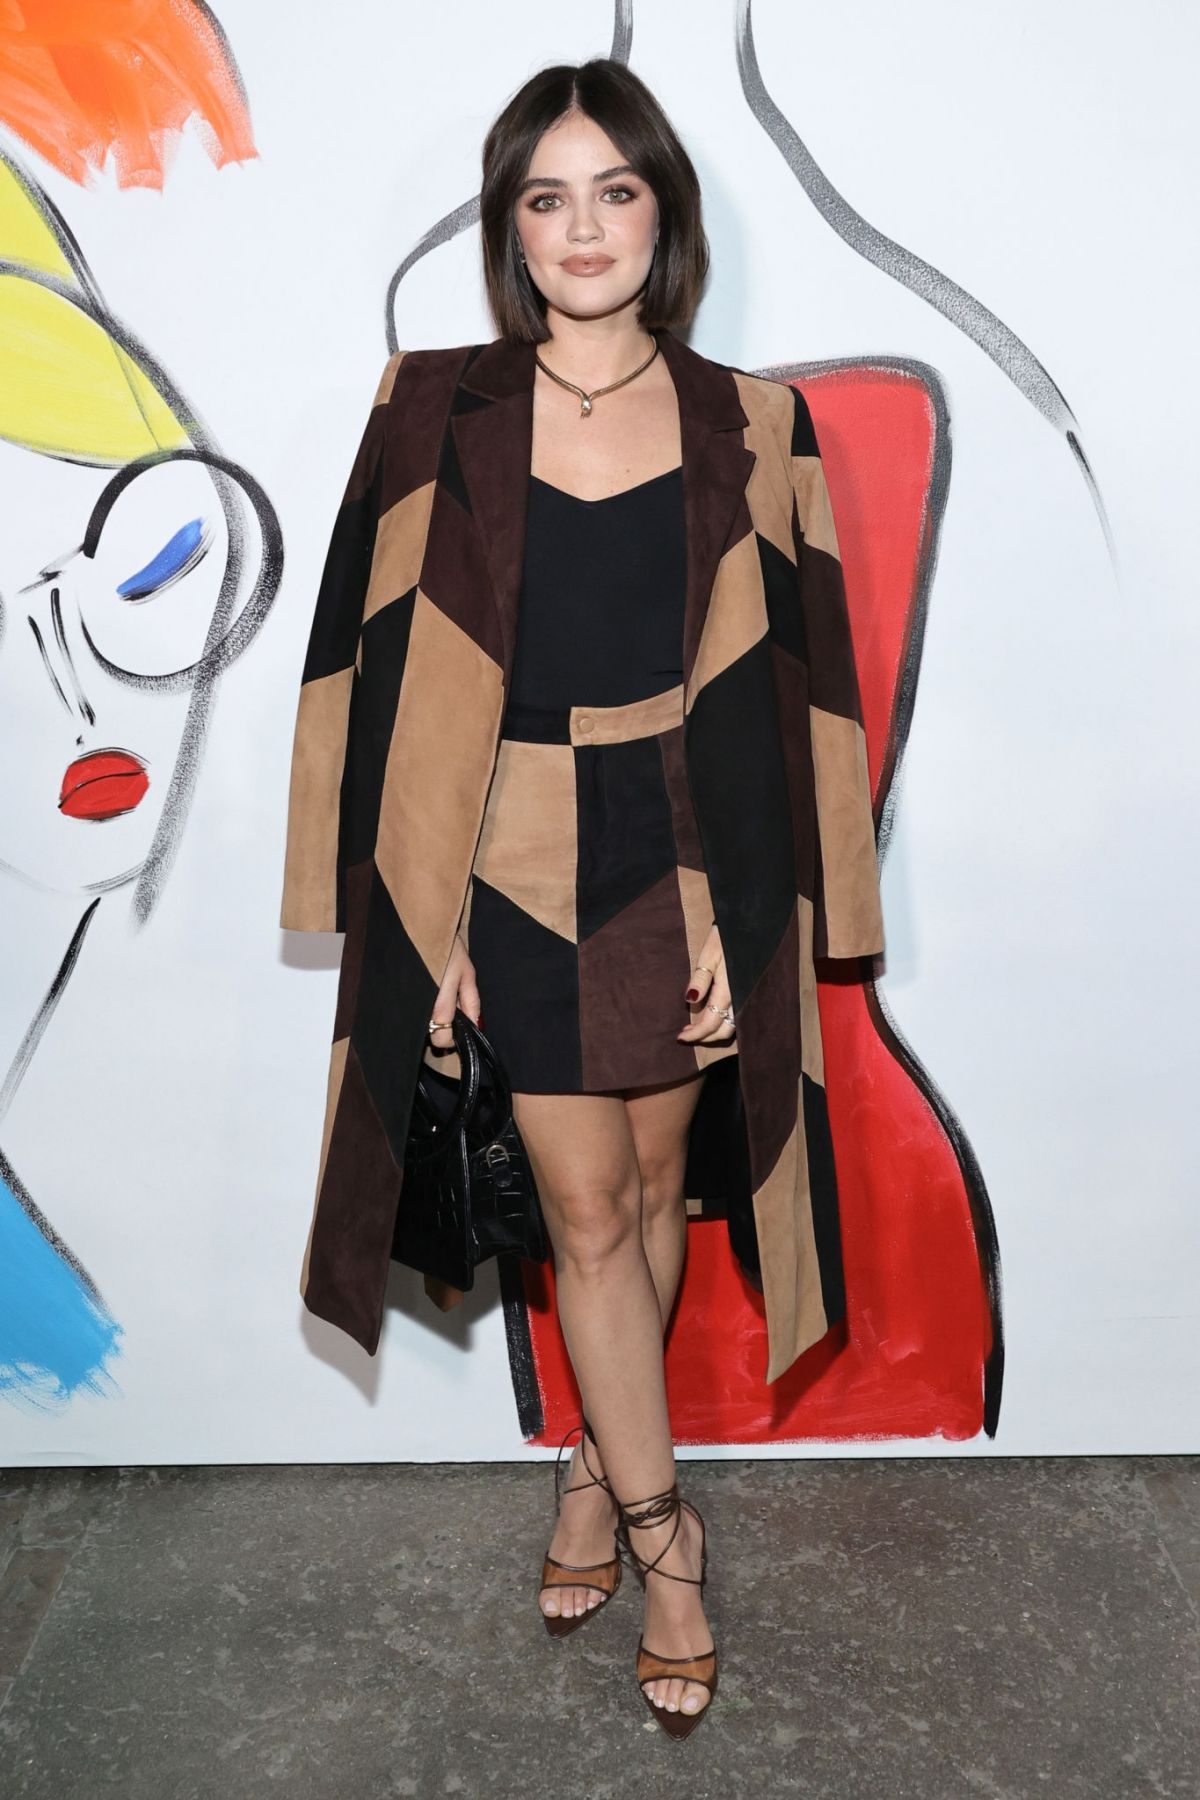 Lucy Hale Attends the alice + olivia show by Stacey Bendet